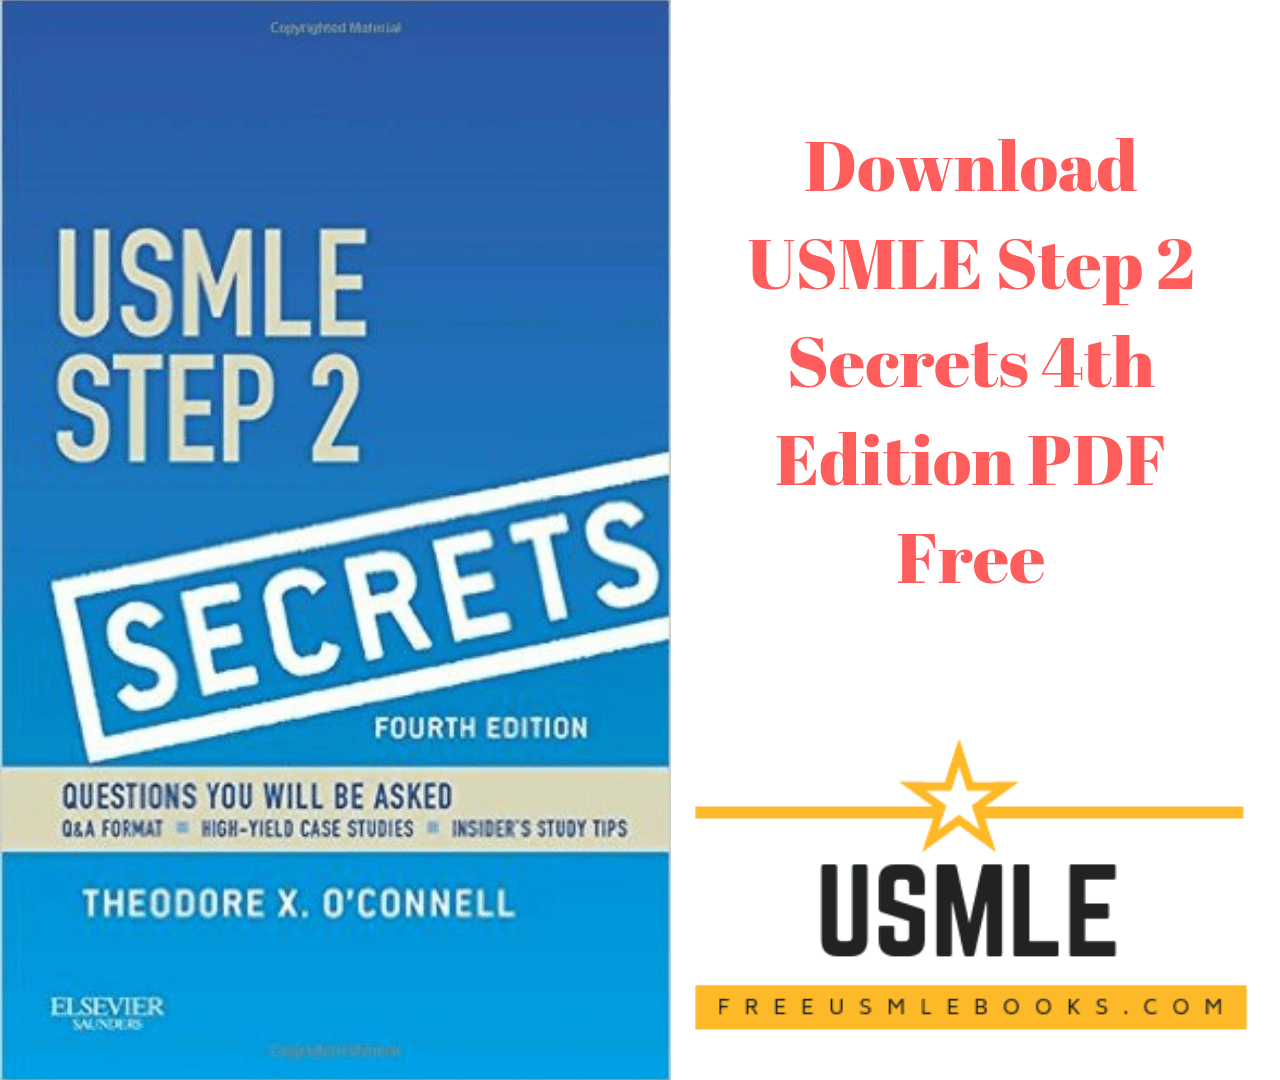 Usmle Step 2 Secrets 4th Edition Pdf